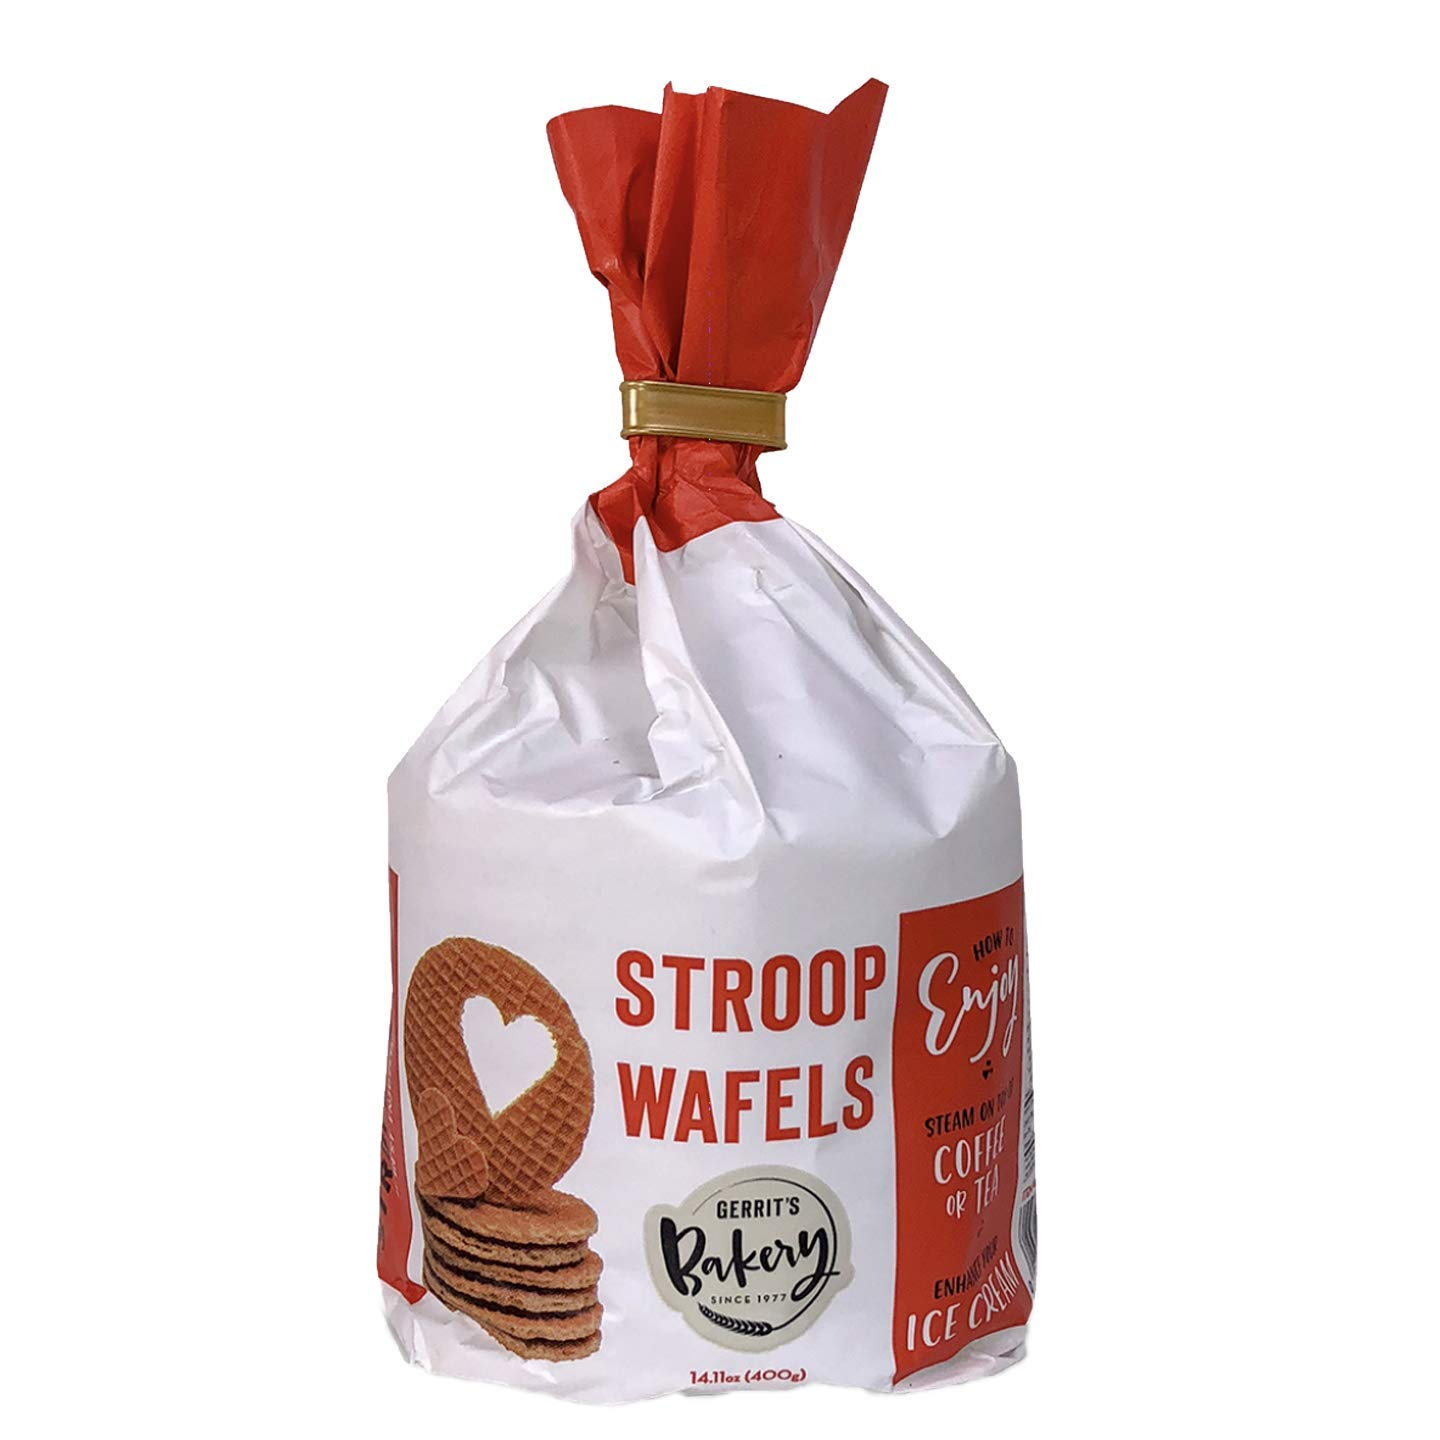 service Stroopwafels Stand up bags - 10 per Special sale item Non GMO bag Hol Baked in